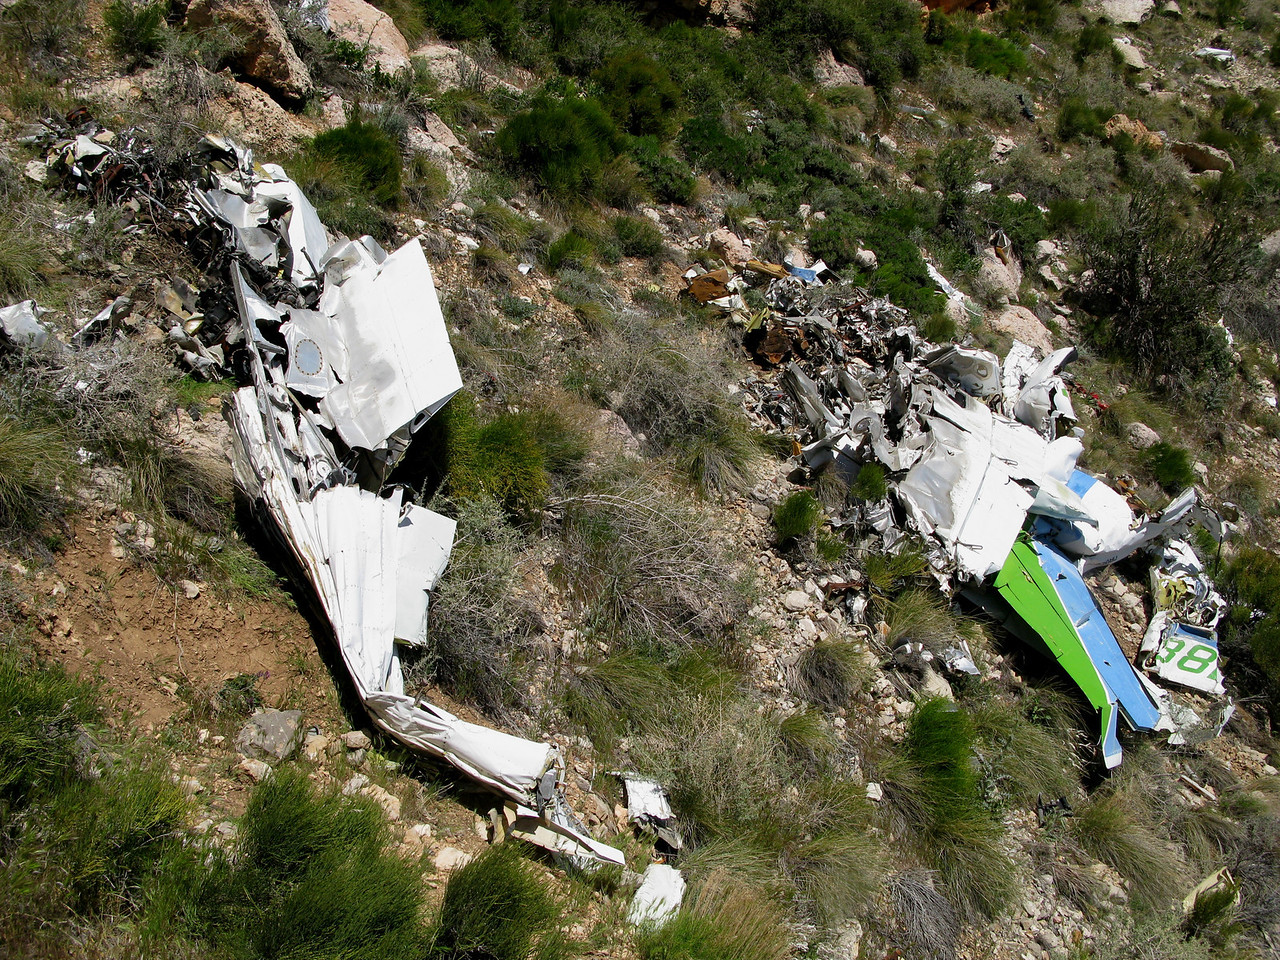 The main wreckage of Flight 88 is situated on a talus slope angled at about 45-50 degrees. The tail section, fuselage, and right wing are on the right side of the photo while the remains of the left wing are on the left side of the photo.